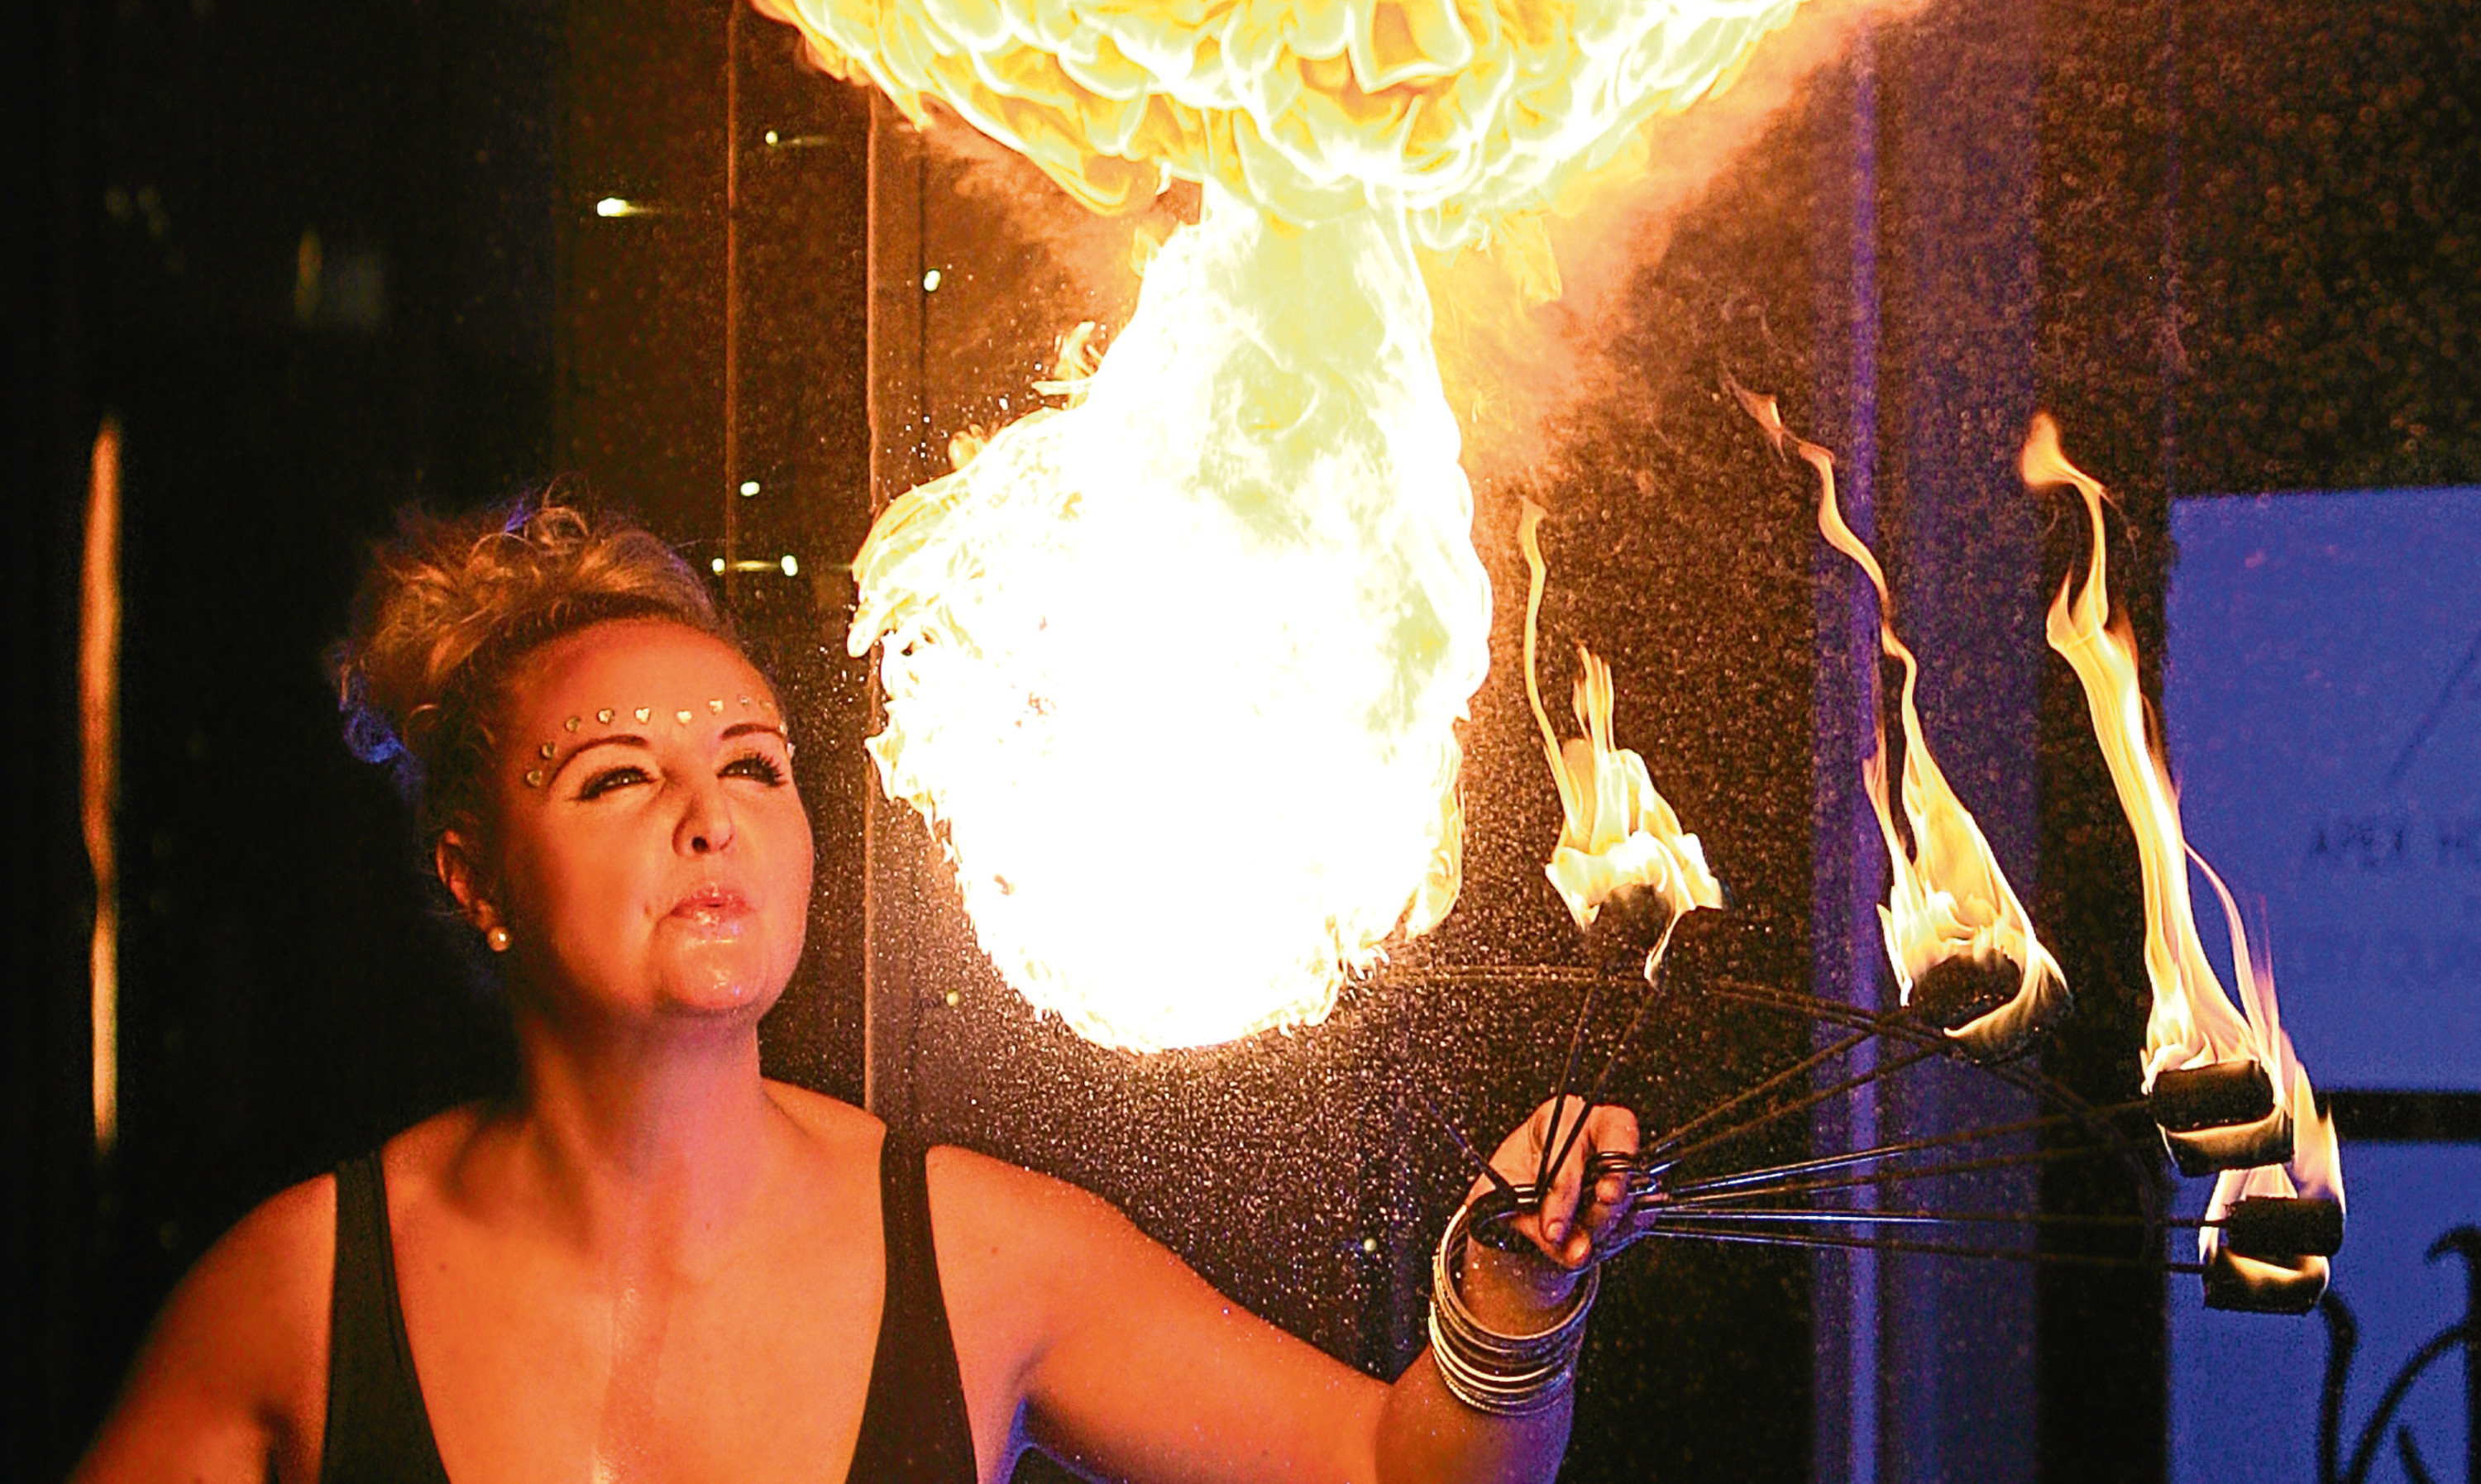 On fire: Business from across Tayside and Fife are turning up the heat on their competitors